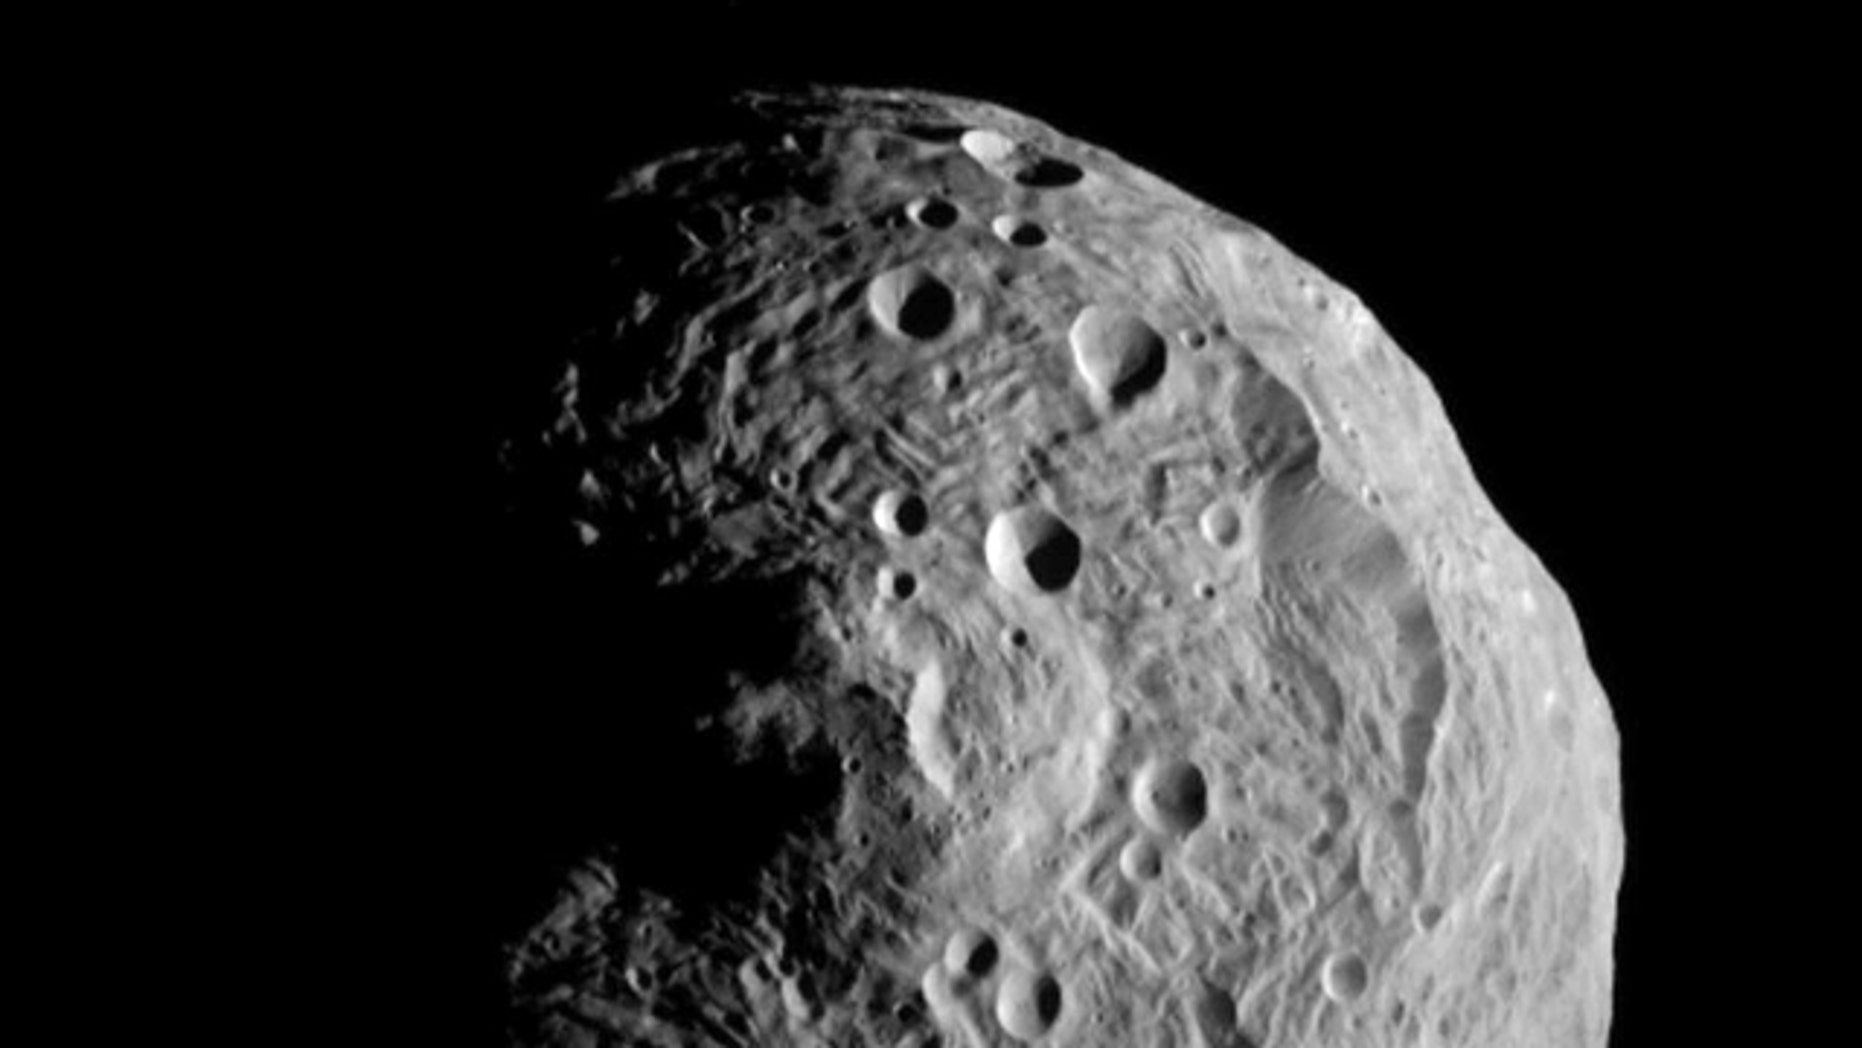 July 17, 2011: The asteroid Vesta, photographed by the Dawn spacecraft. The image was taken from a distance of about 9,500 miles (15,000 kilometers) away.